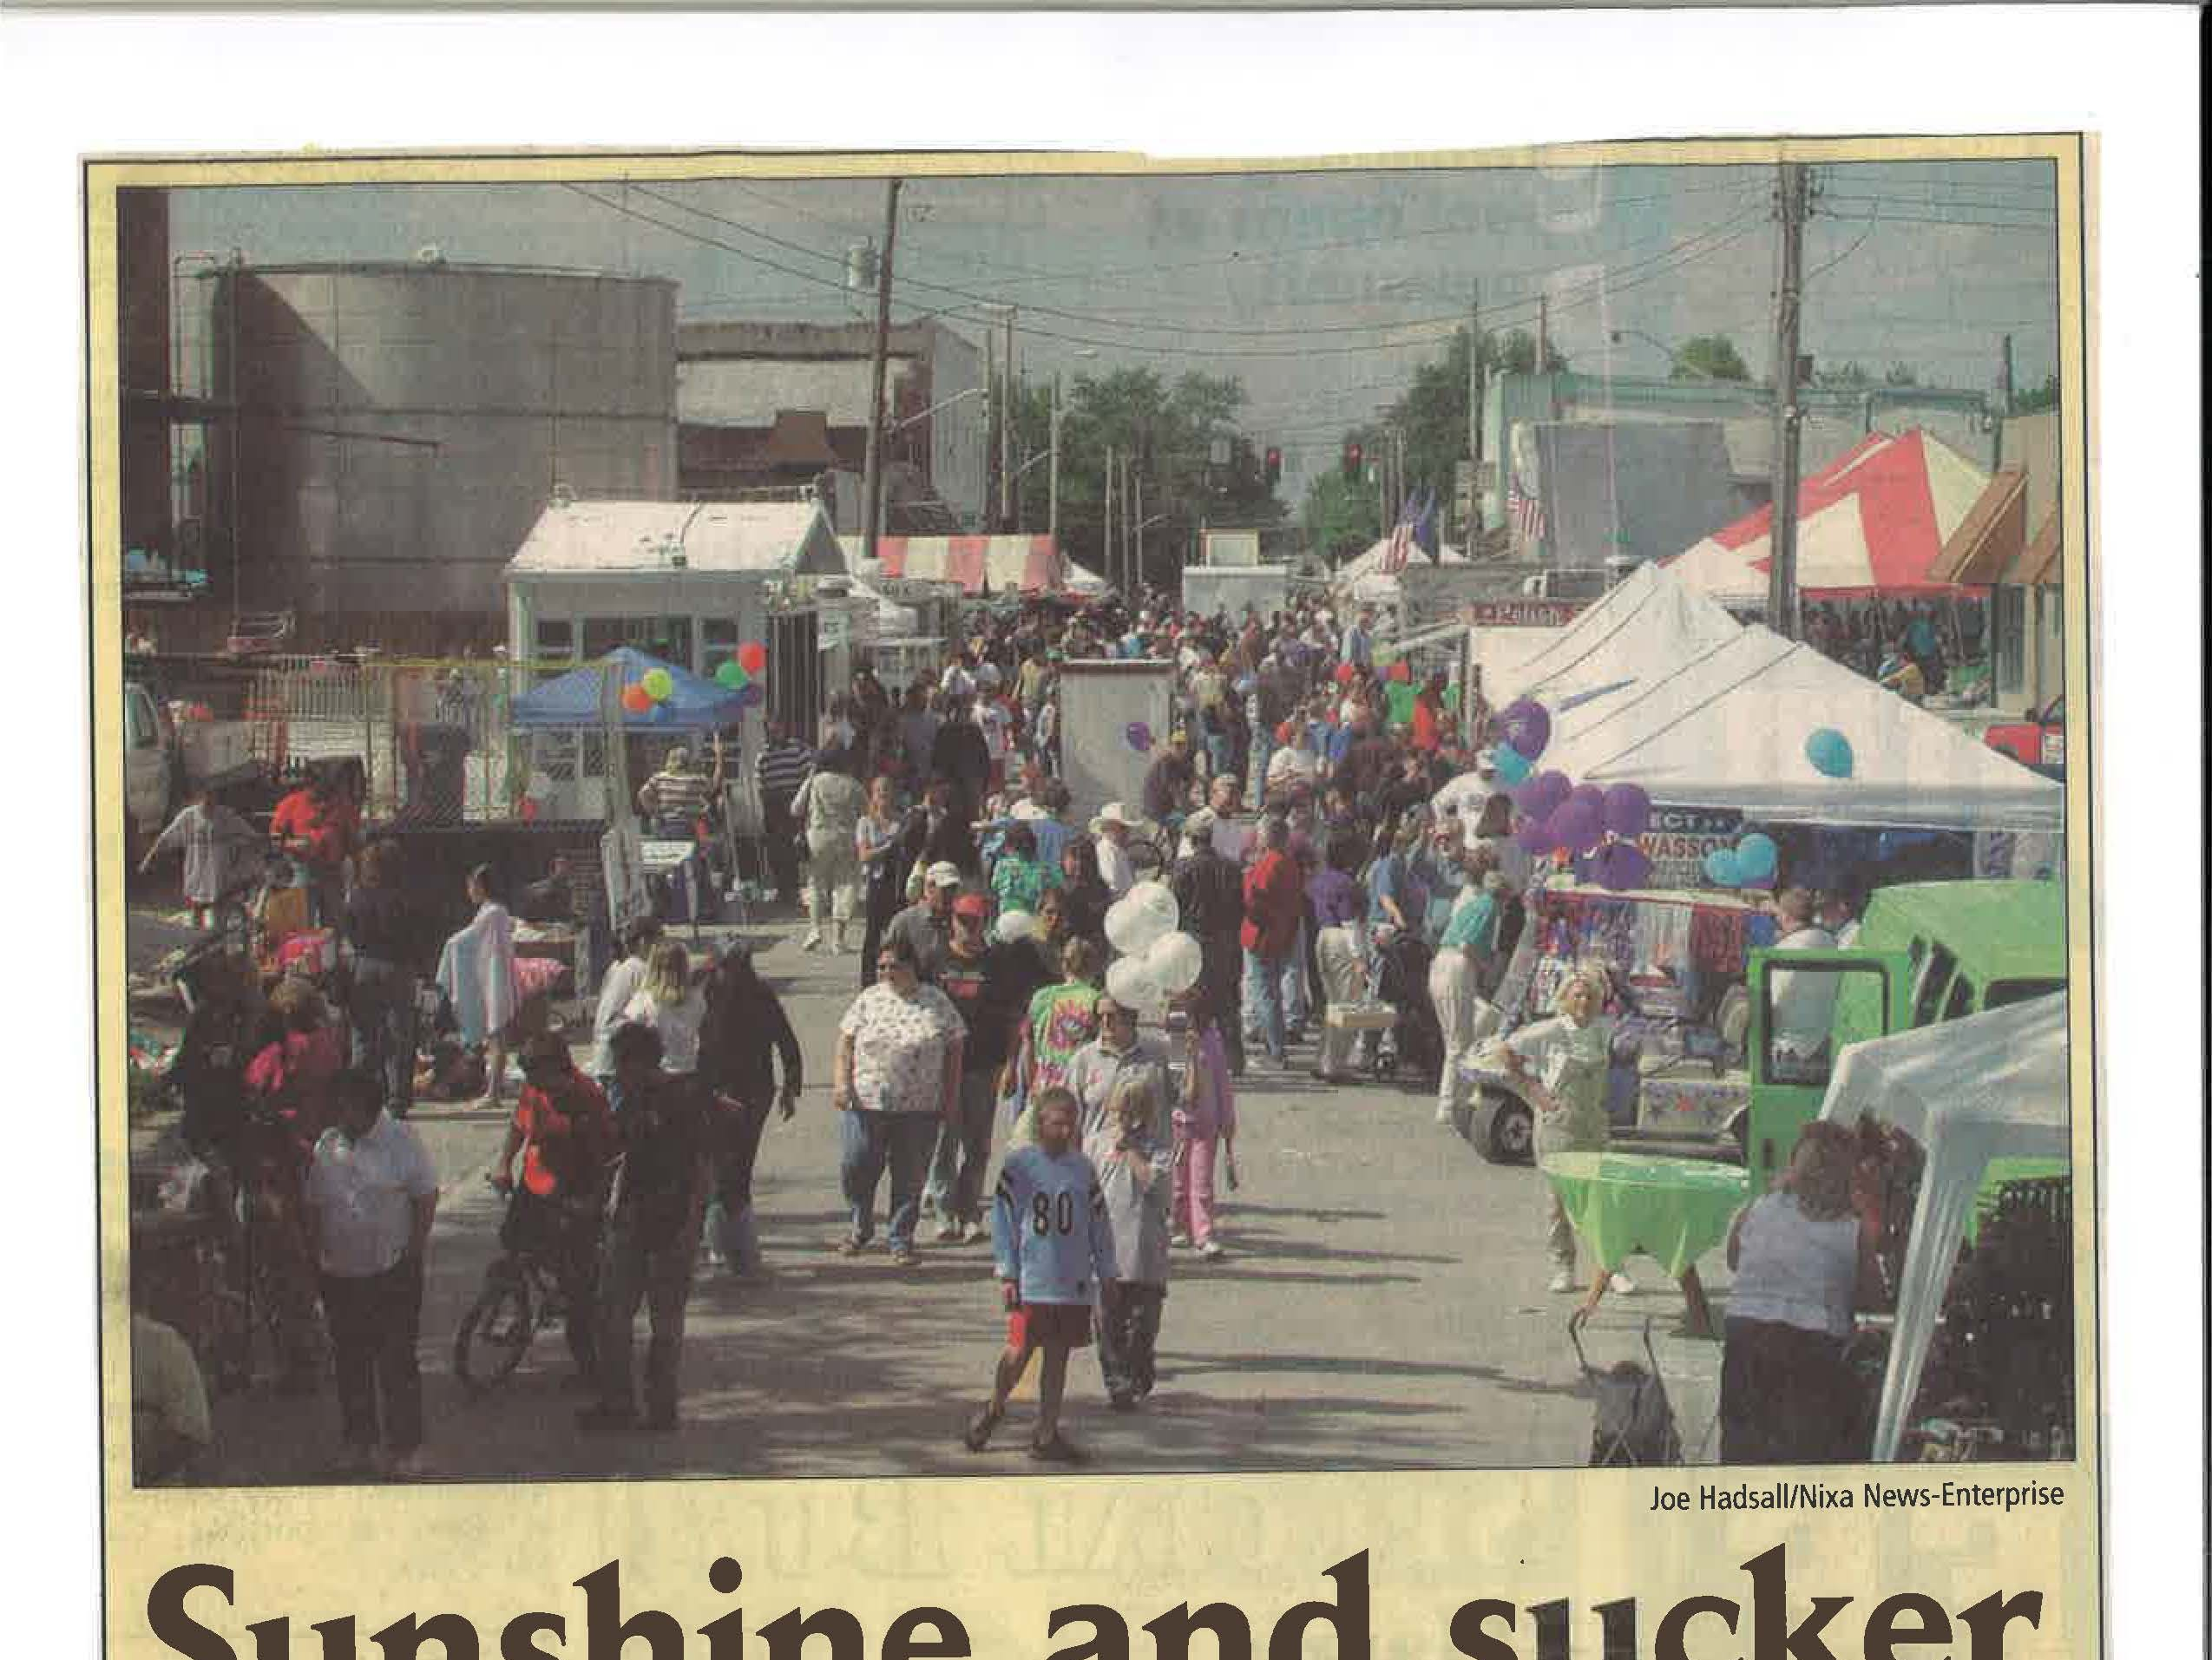 A news clipping from 2002 from the city of Nixa's collection of vintage Sucker Days photos.